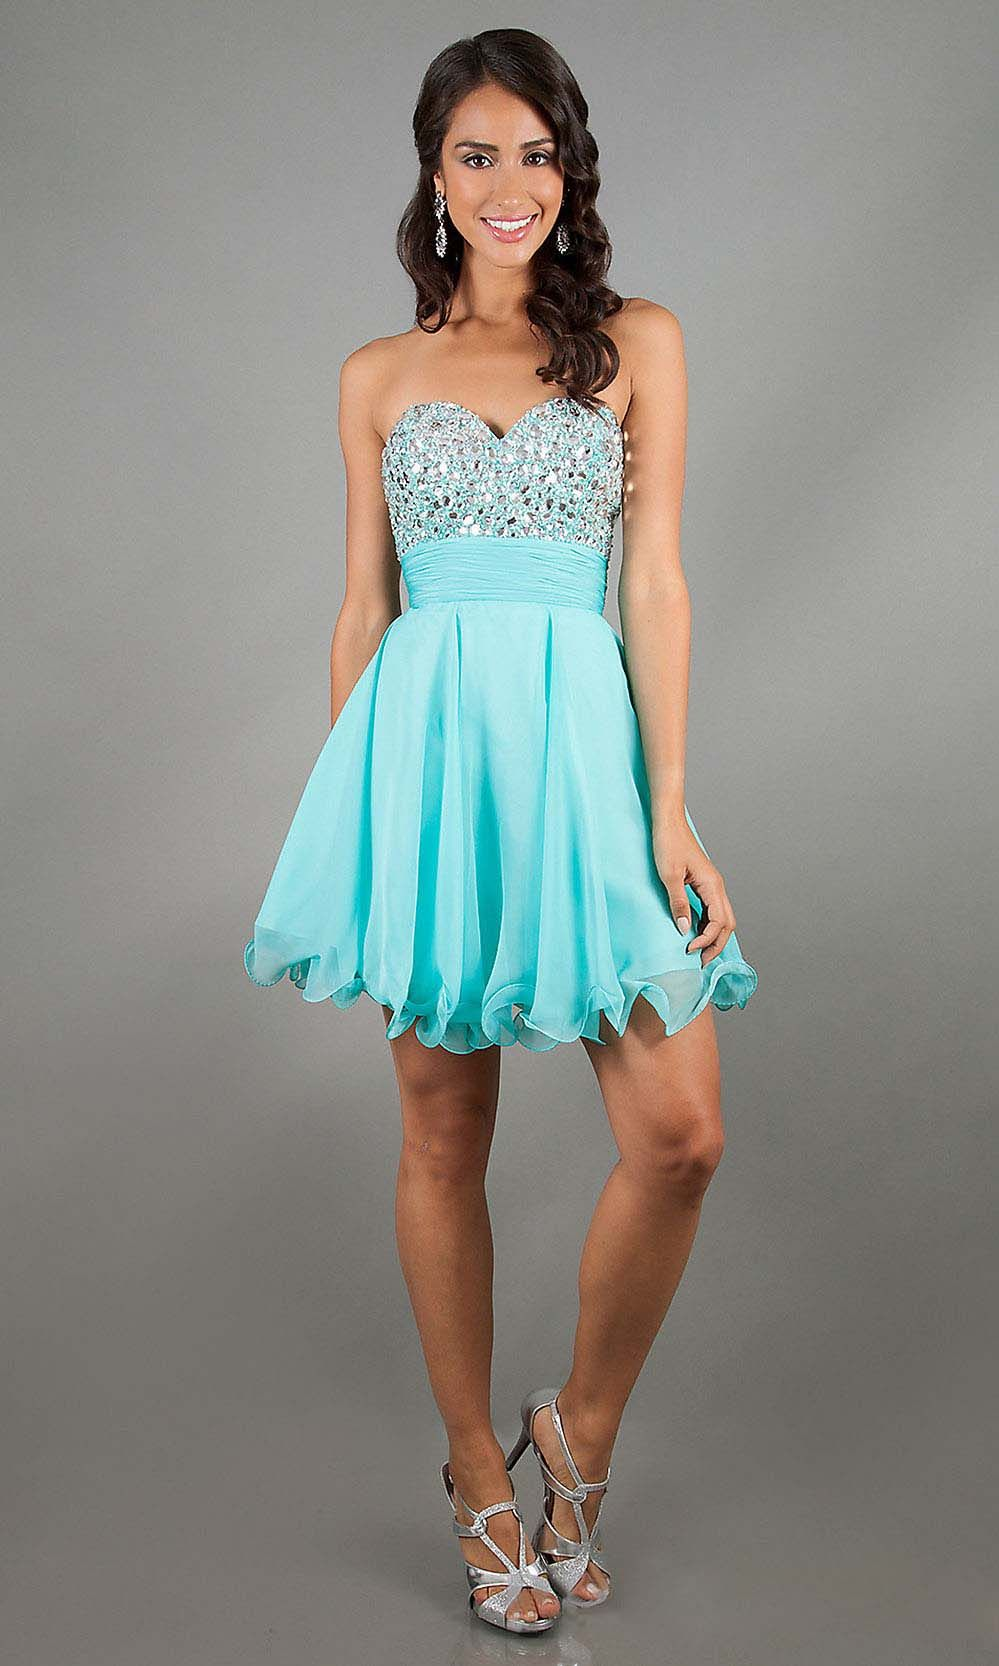 Okbridaldress tiffany blue prom dress affordable prom dresses